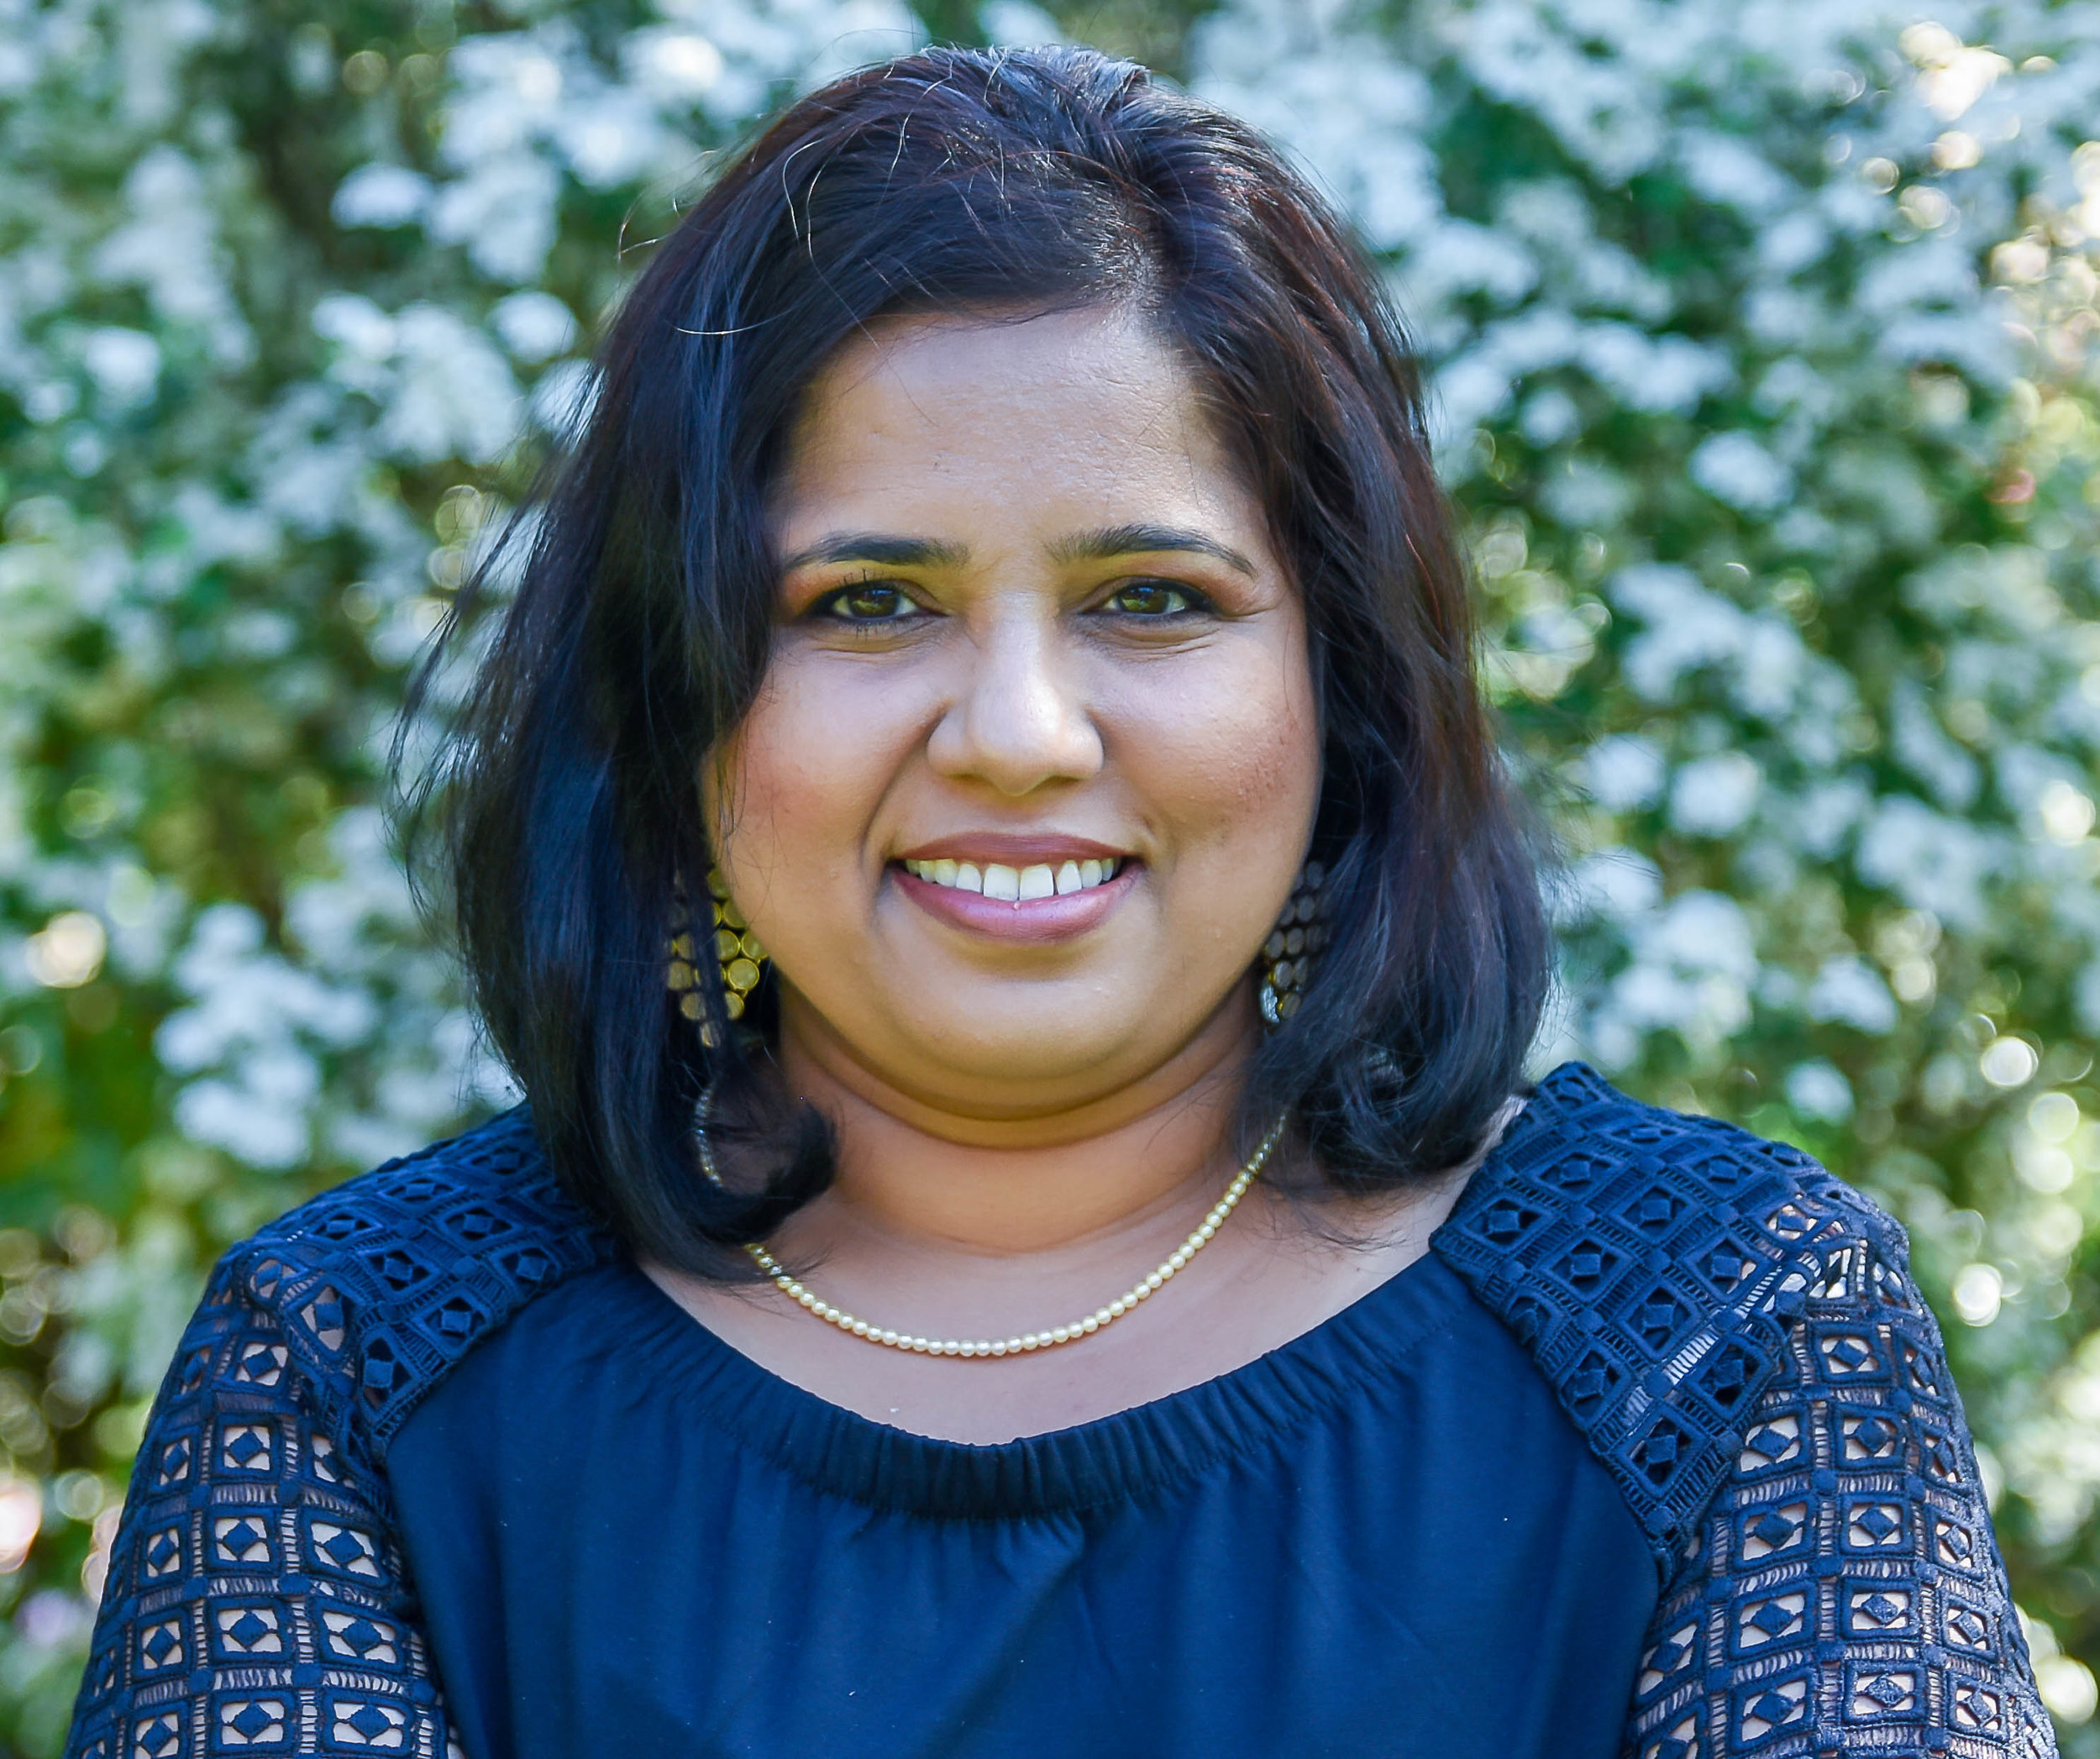 About - Find out about Dr. Kiranmayi (Kiran) Neelarambam's qualifications and experiences.